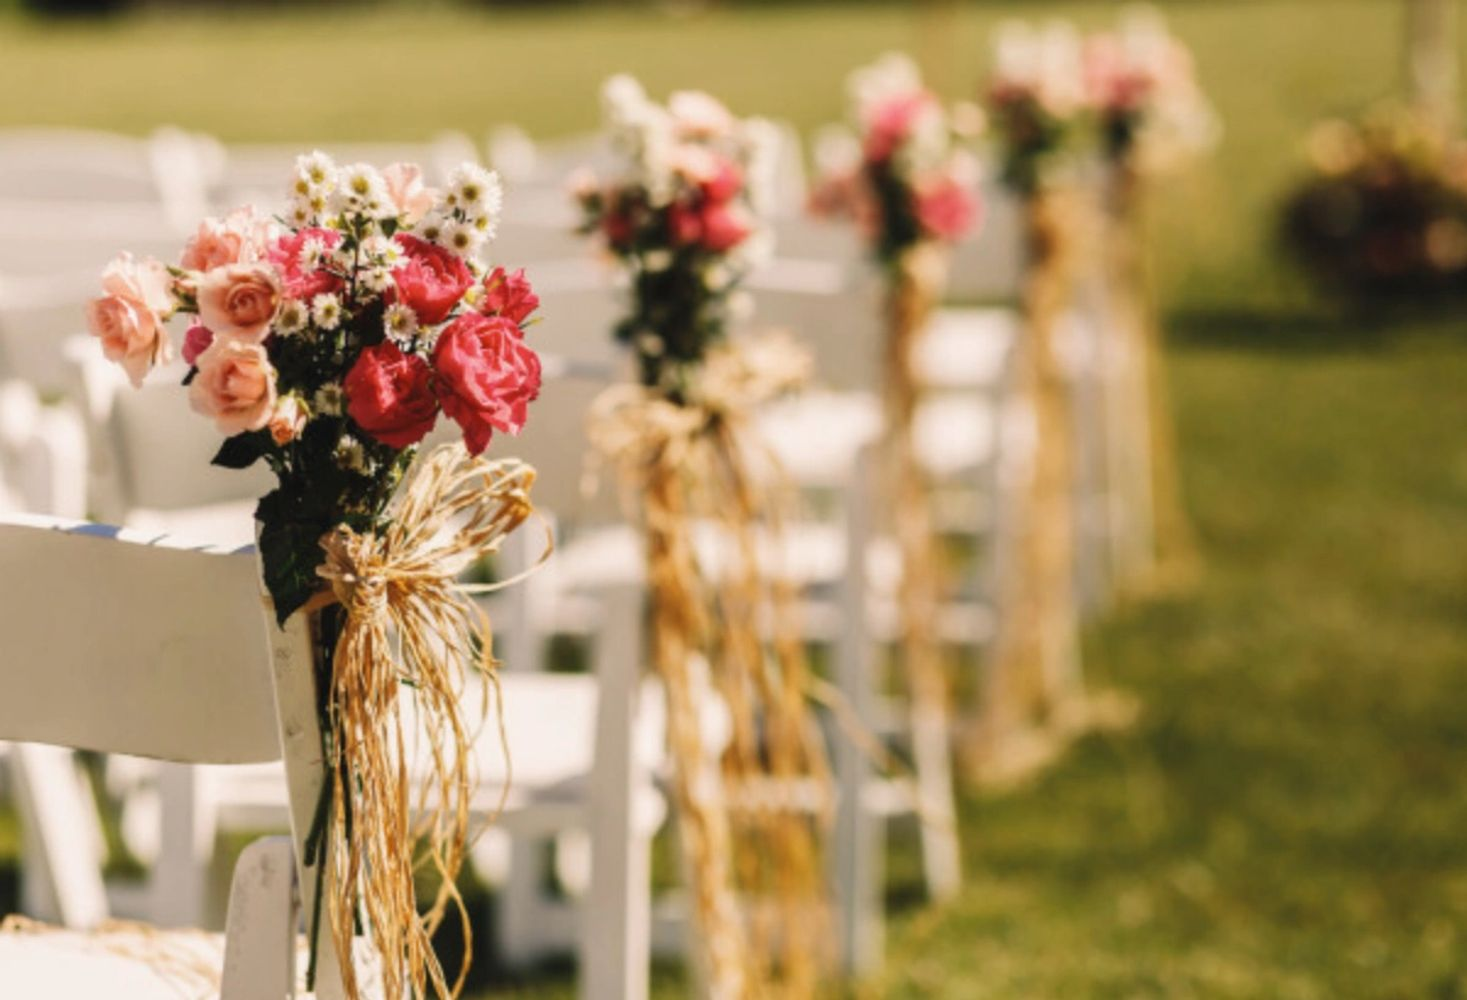 Rows of wedding guest chairs with flower posies